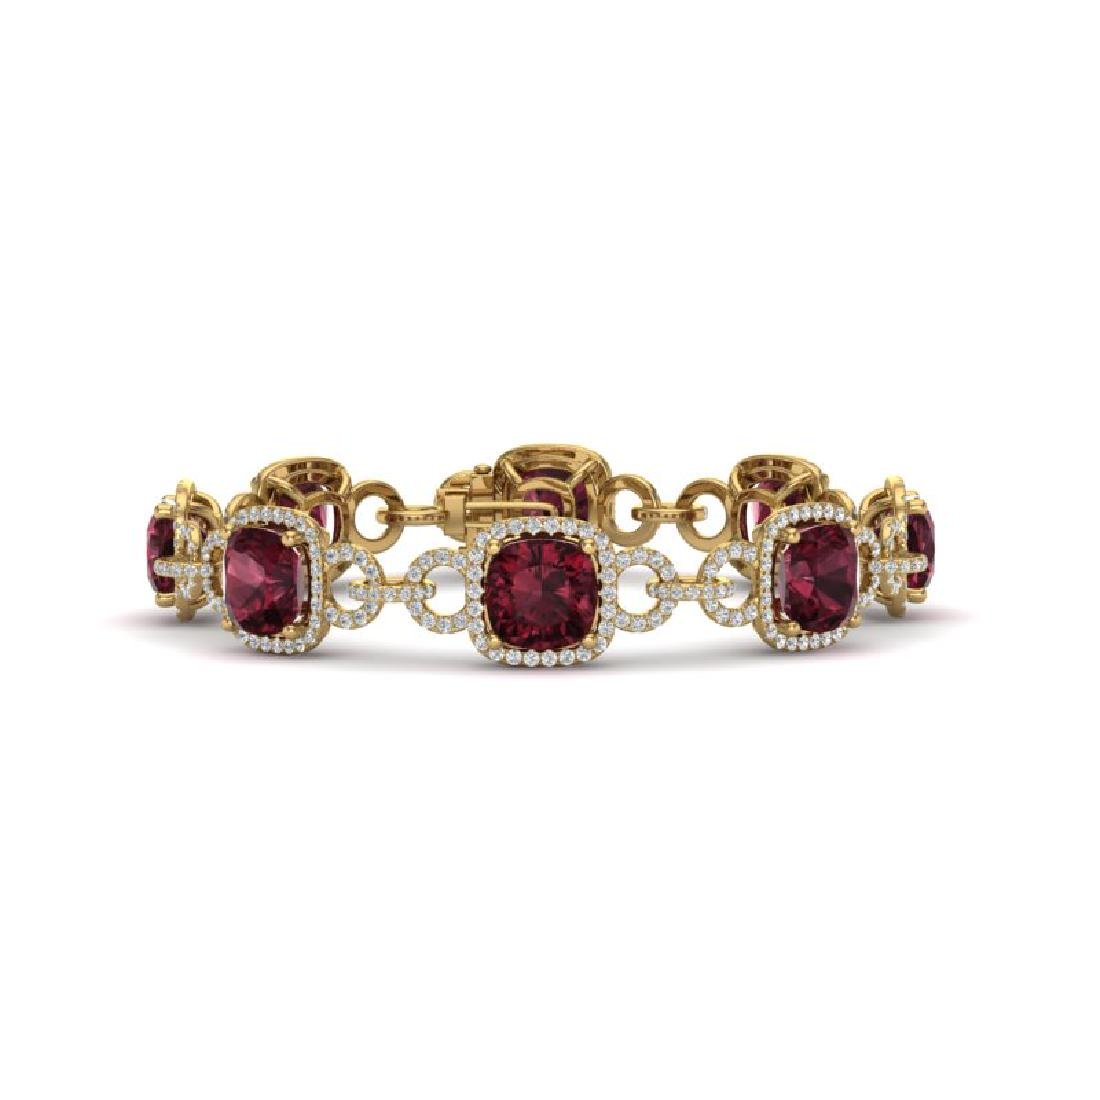 30 CTW Garnet & VS/SI Diamond Bracelet 14K Yellow Gold